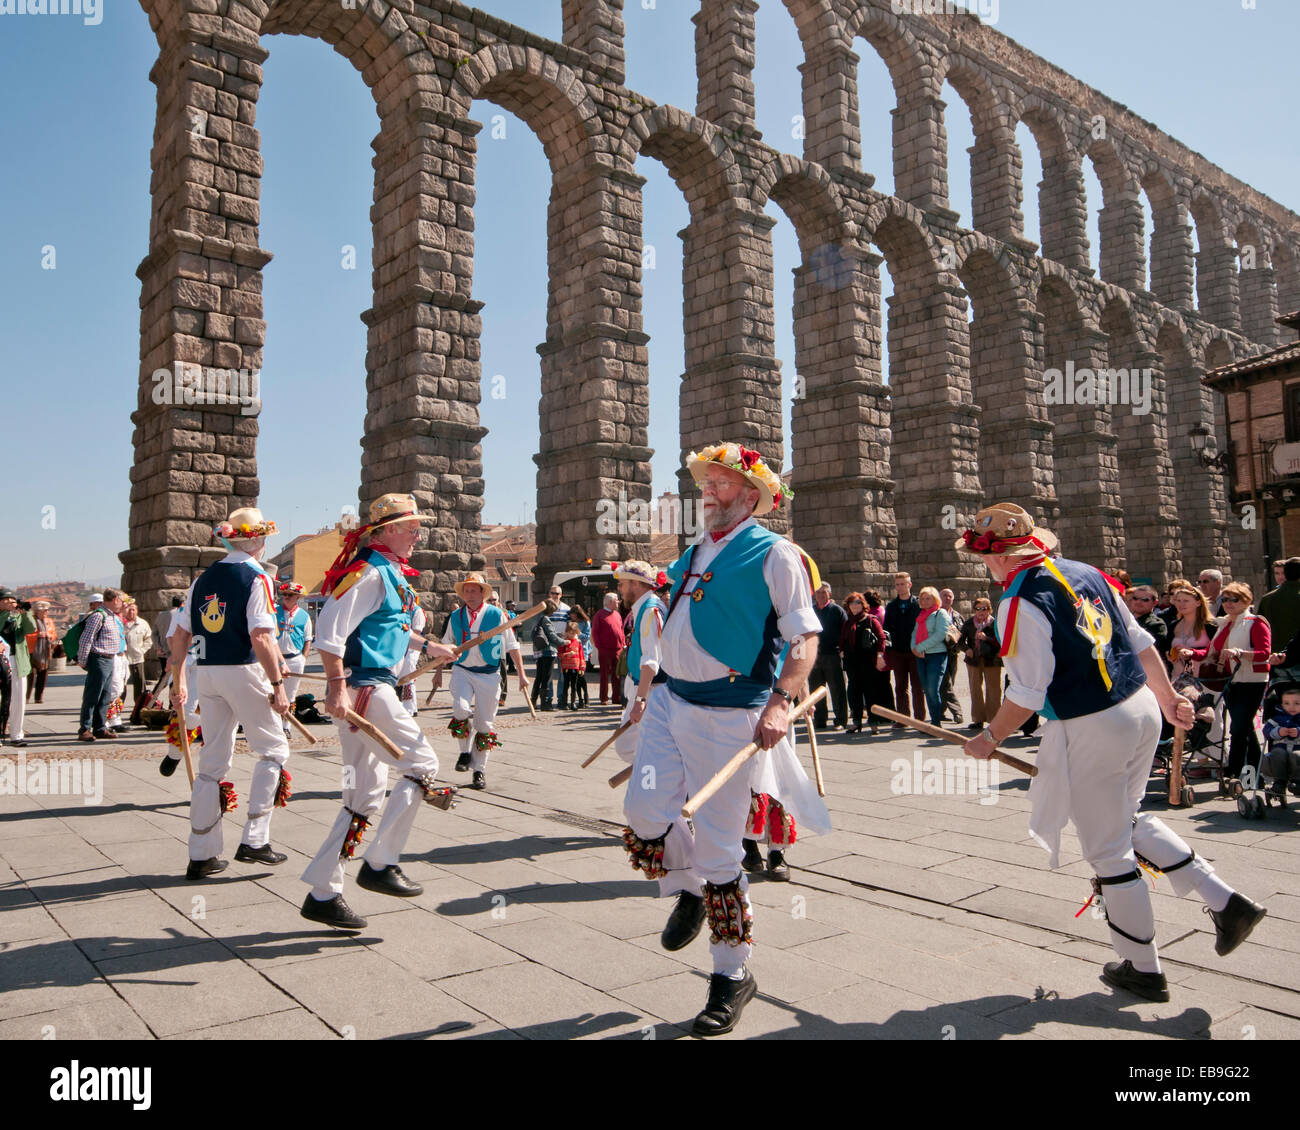 SEGOVIA  SPAIN - MARCH 16 2014 - East Suffolk Morris Men dancing in the ancient Roman city of Segovia, Spain with - Stock Image